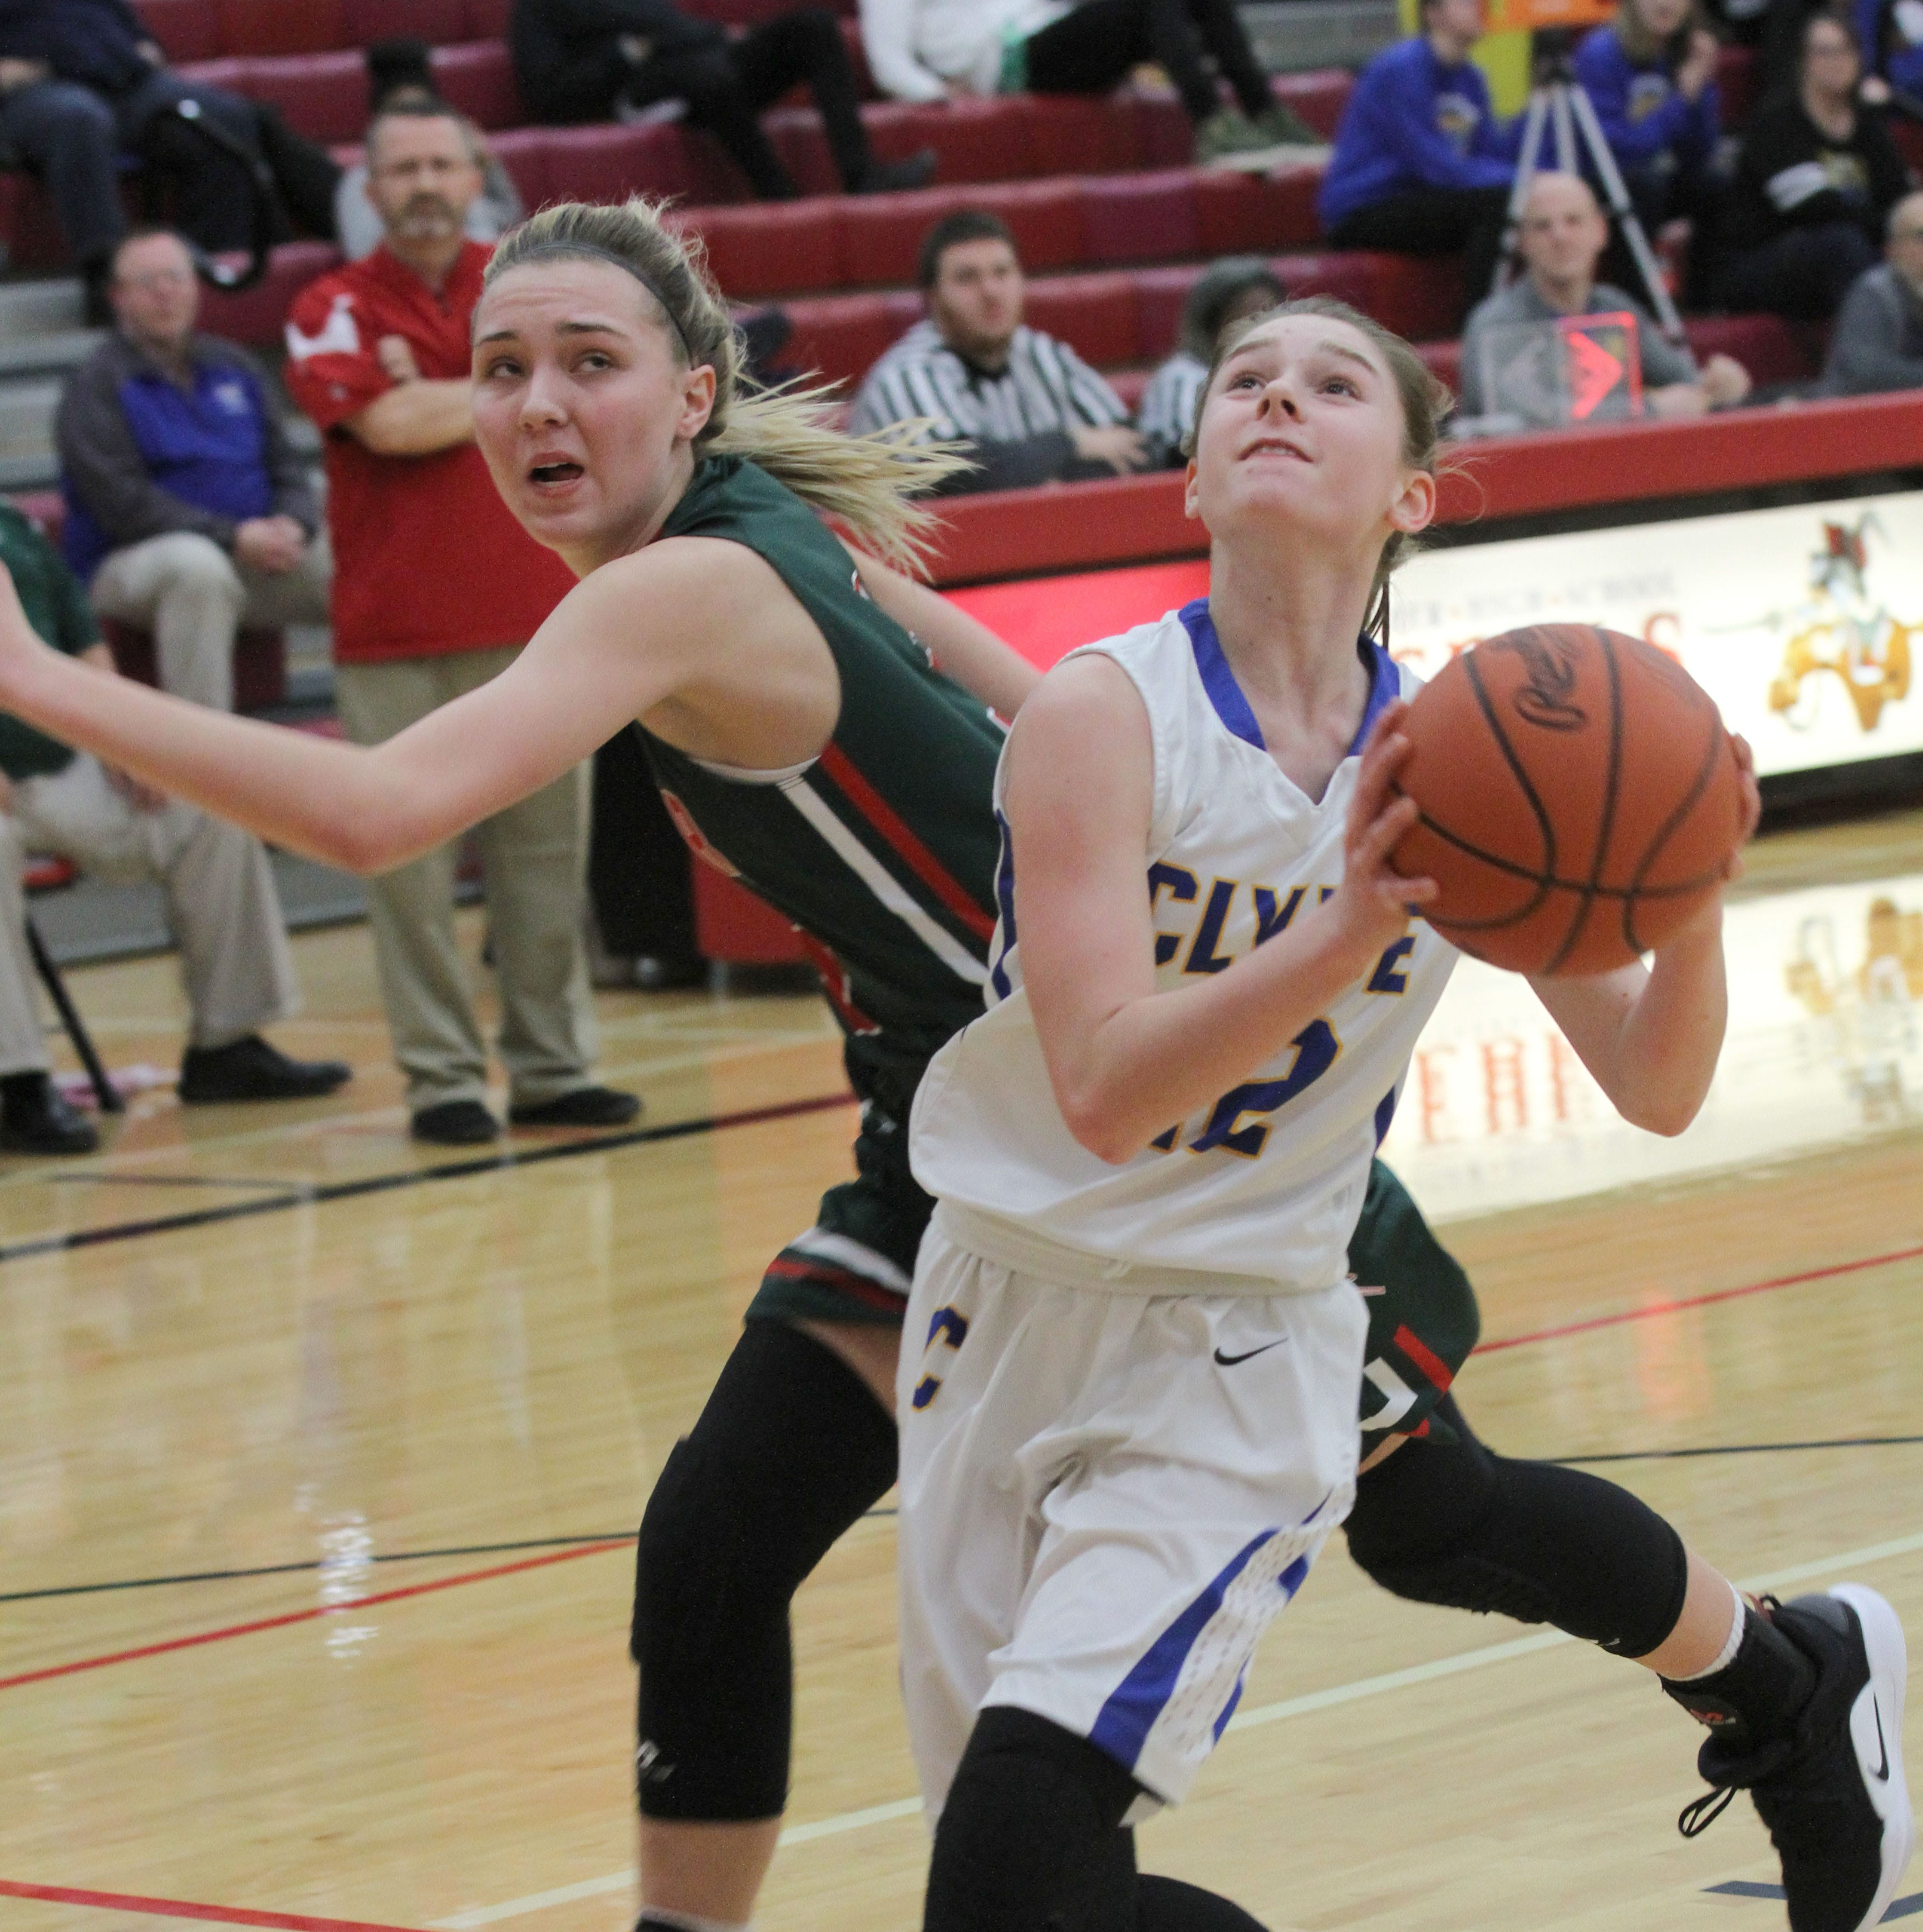 Roundup: Keegan helps Clyde girls advance in Division II